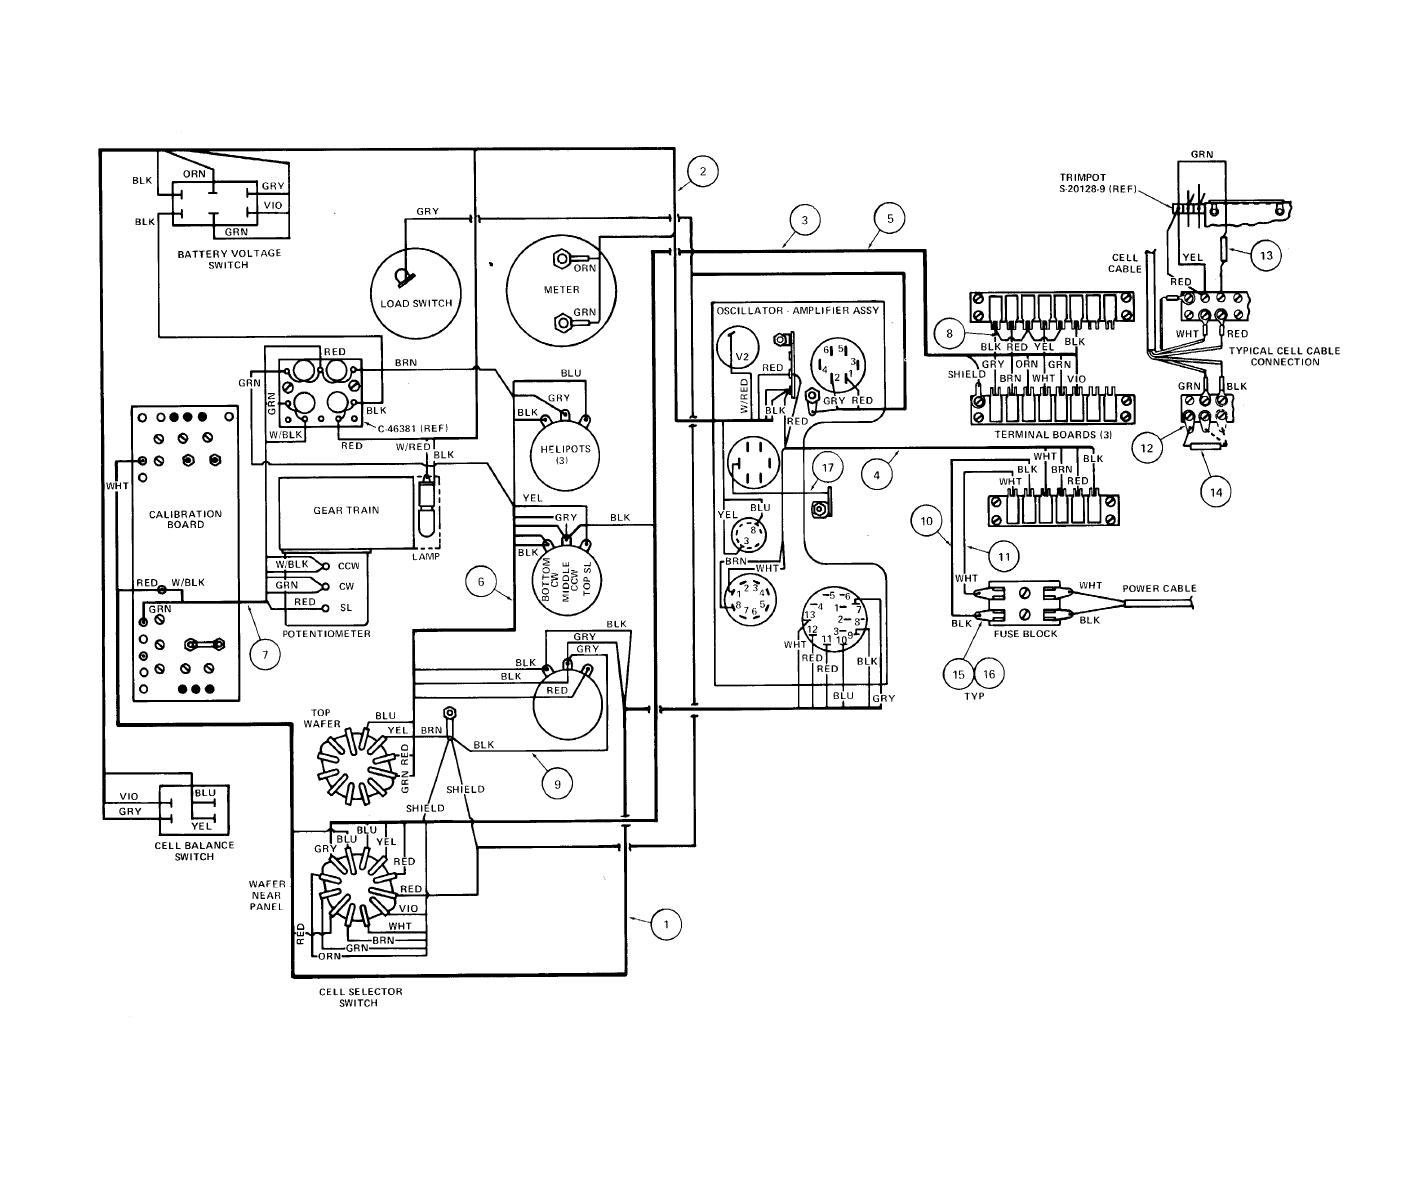 Figure 4-3. Indicator Assembly Wiring Diagram (Model M-1)